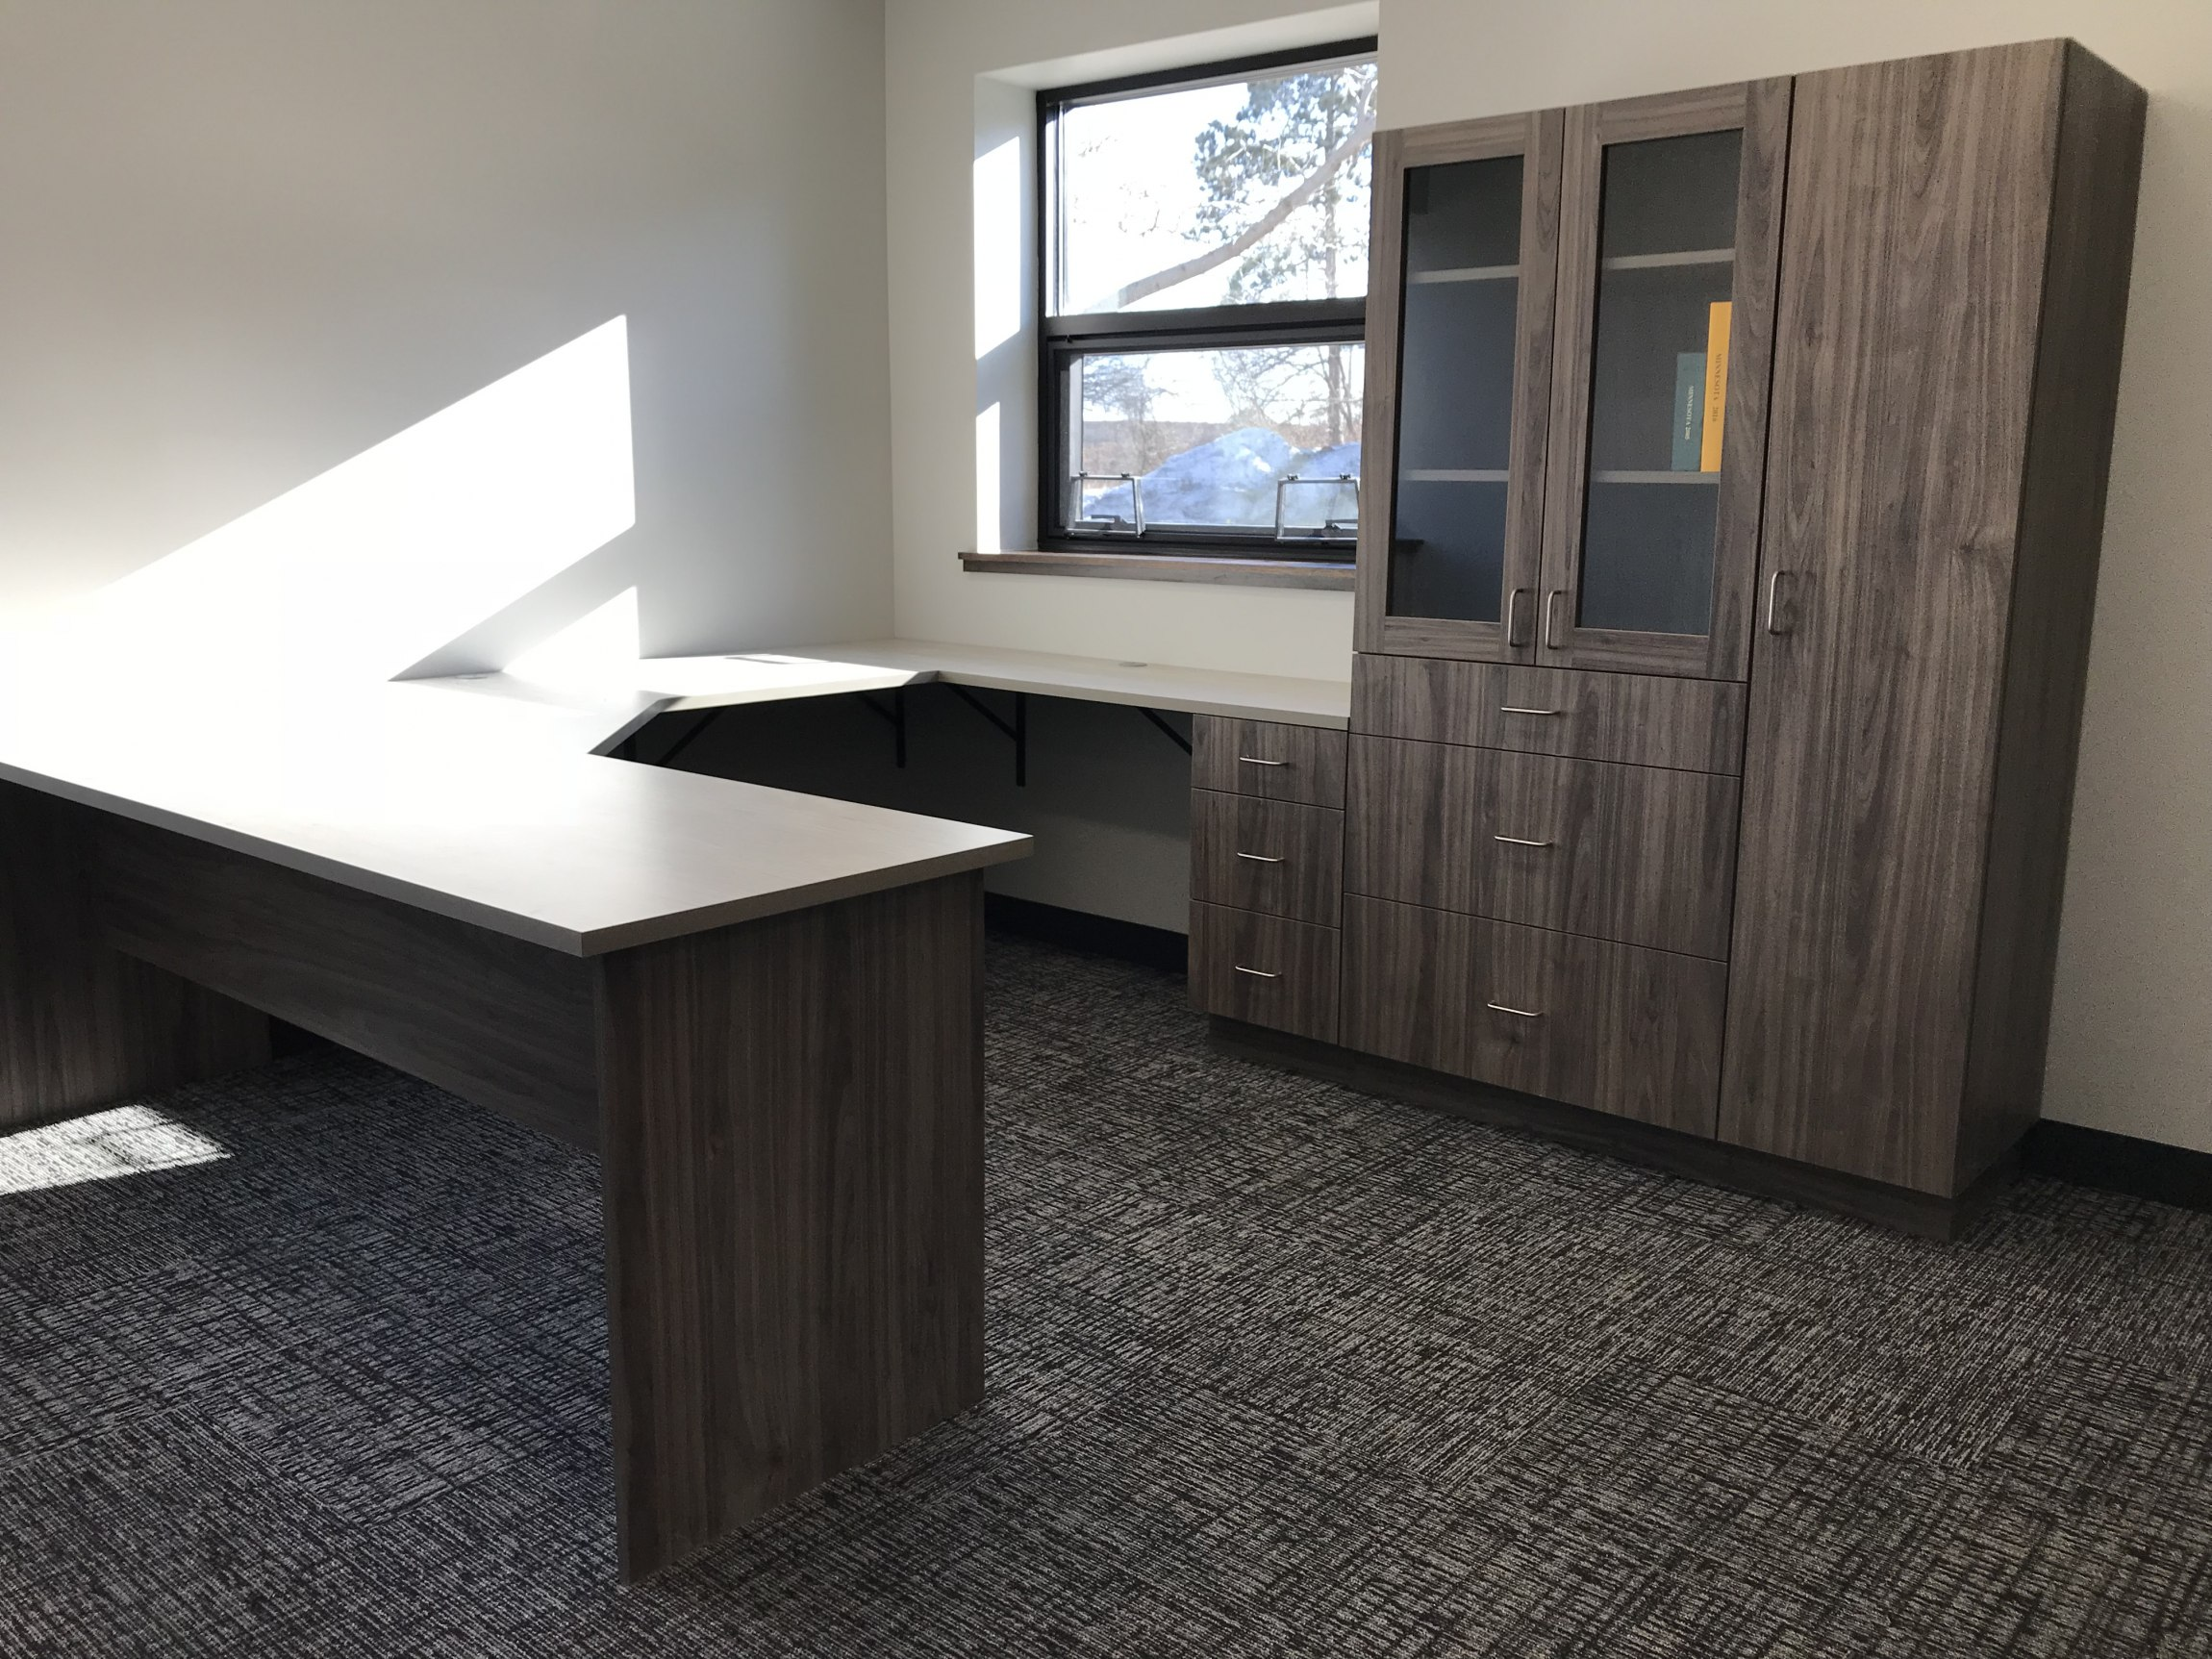 Commercial cabinets in Minnesota